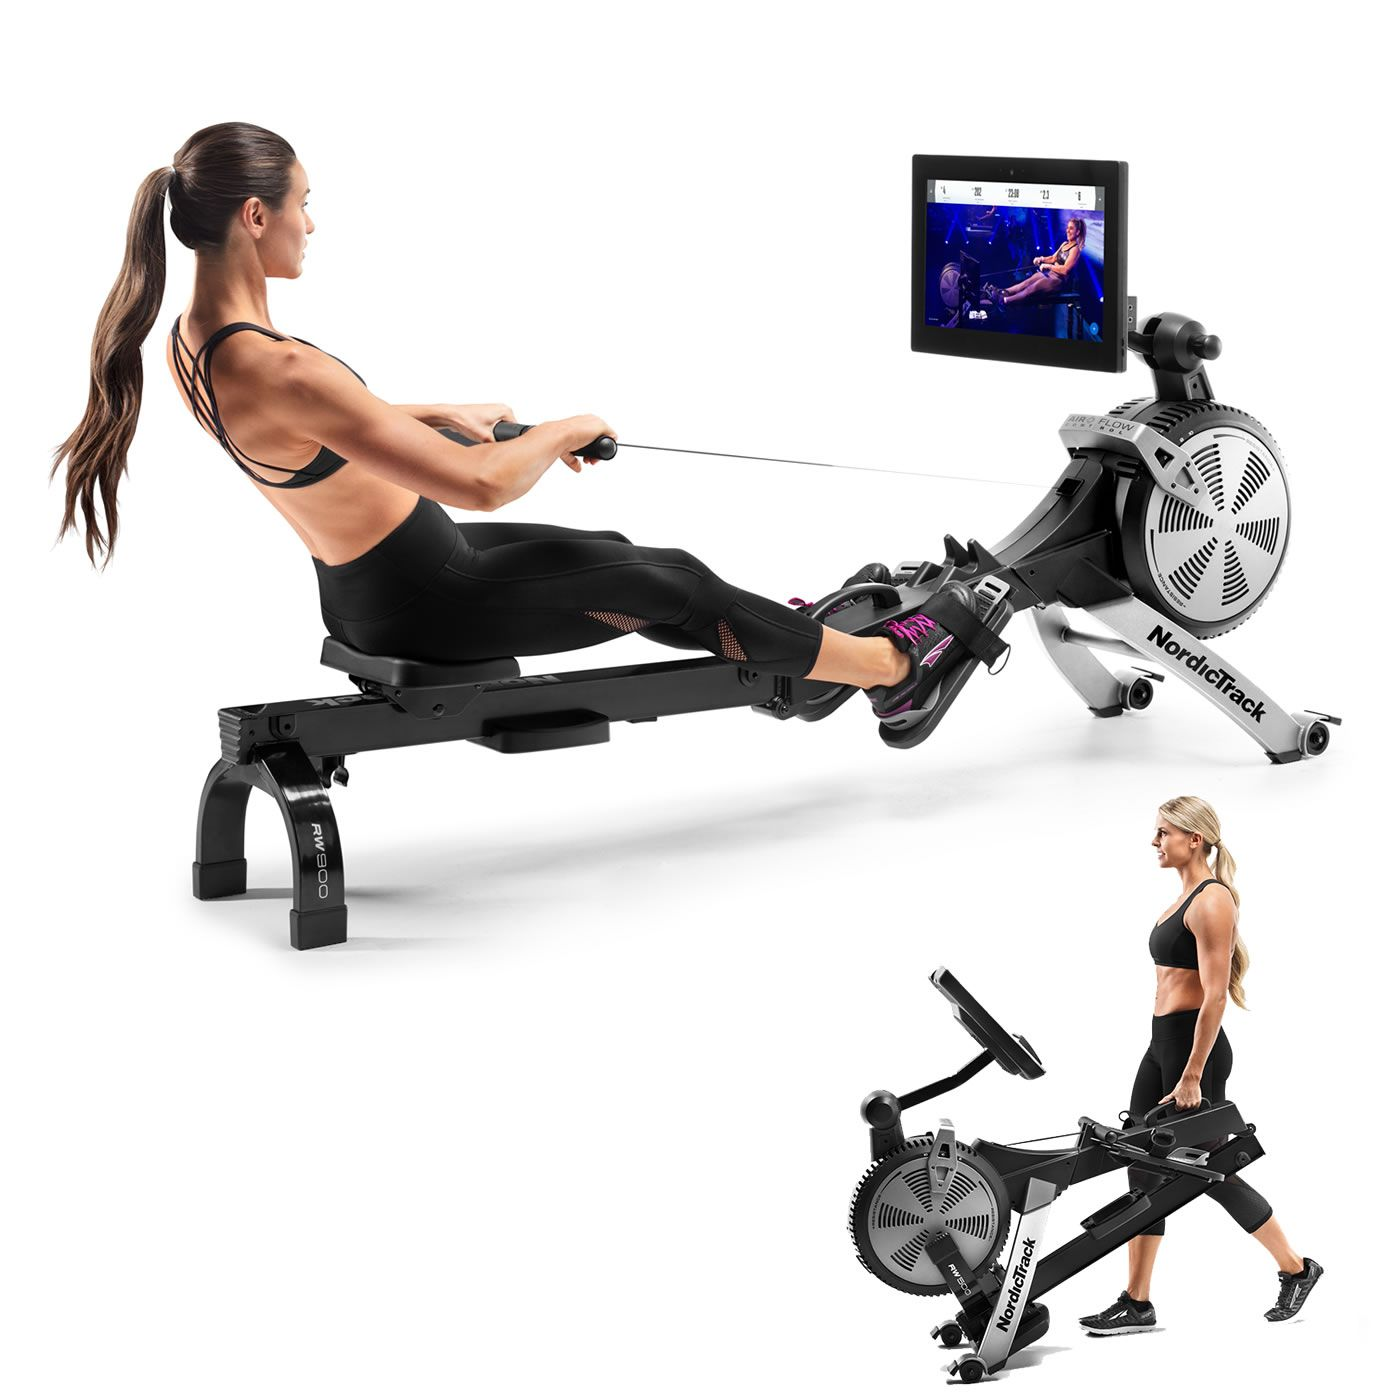 RW900 Rowing Machine  with its wide screen for interactive iFit training plus folding design